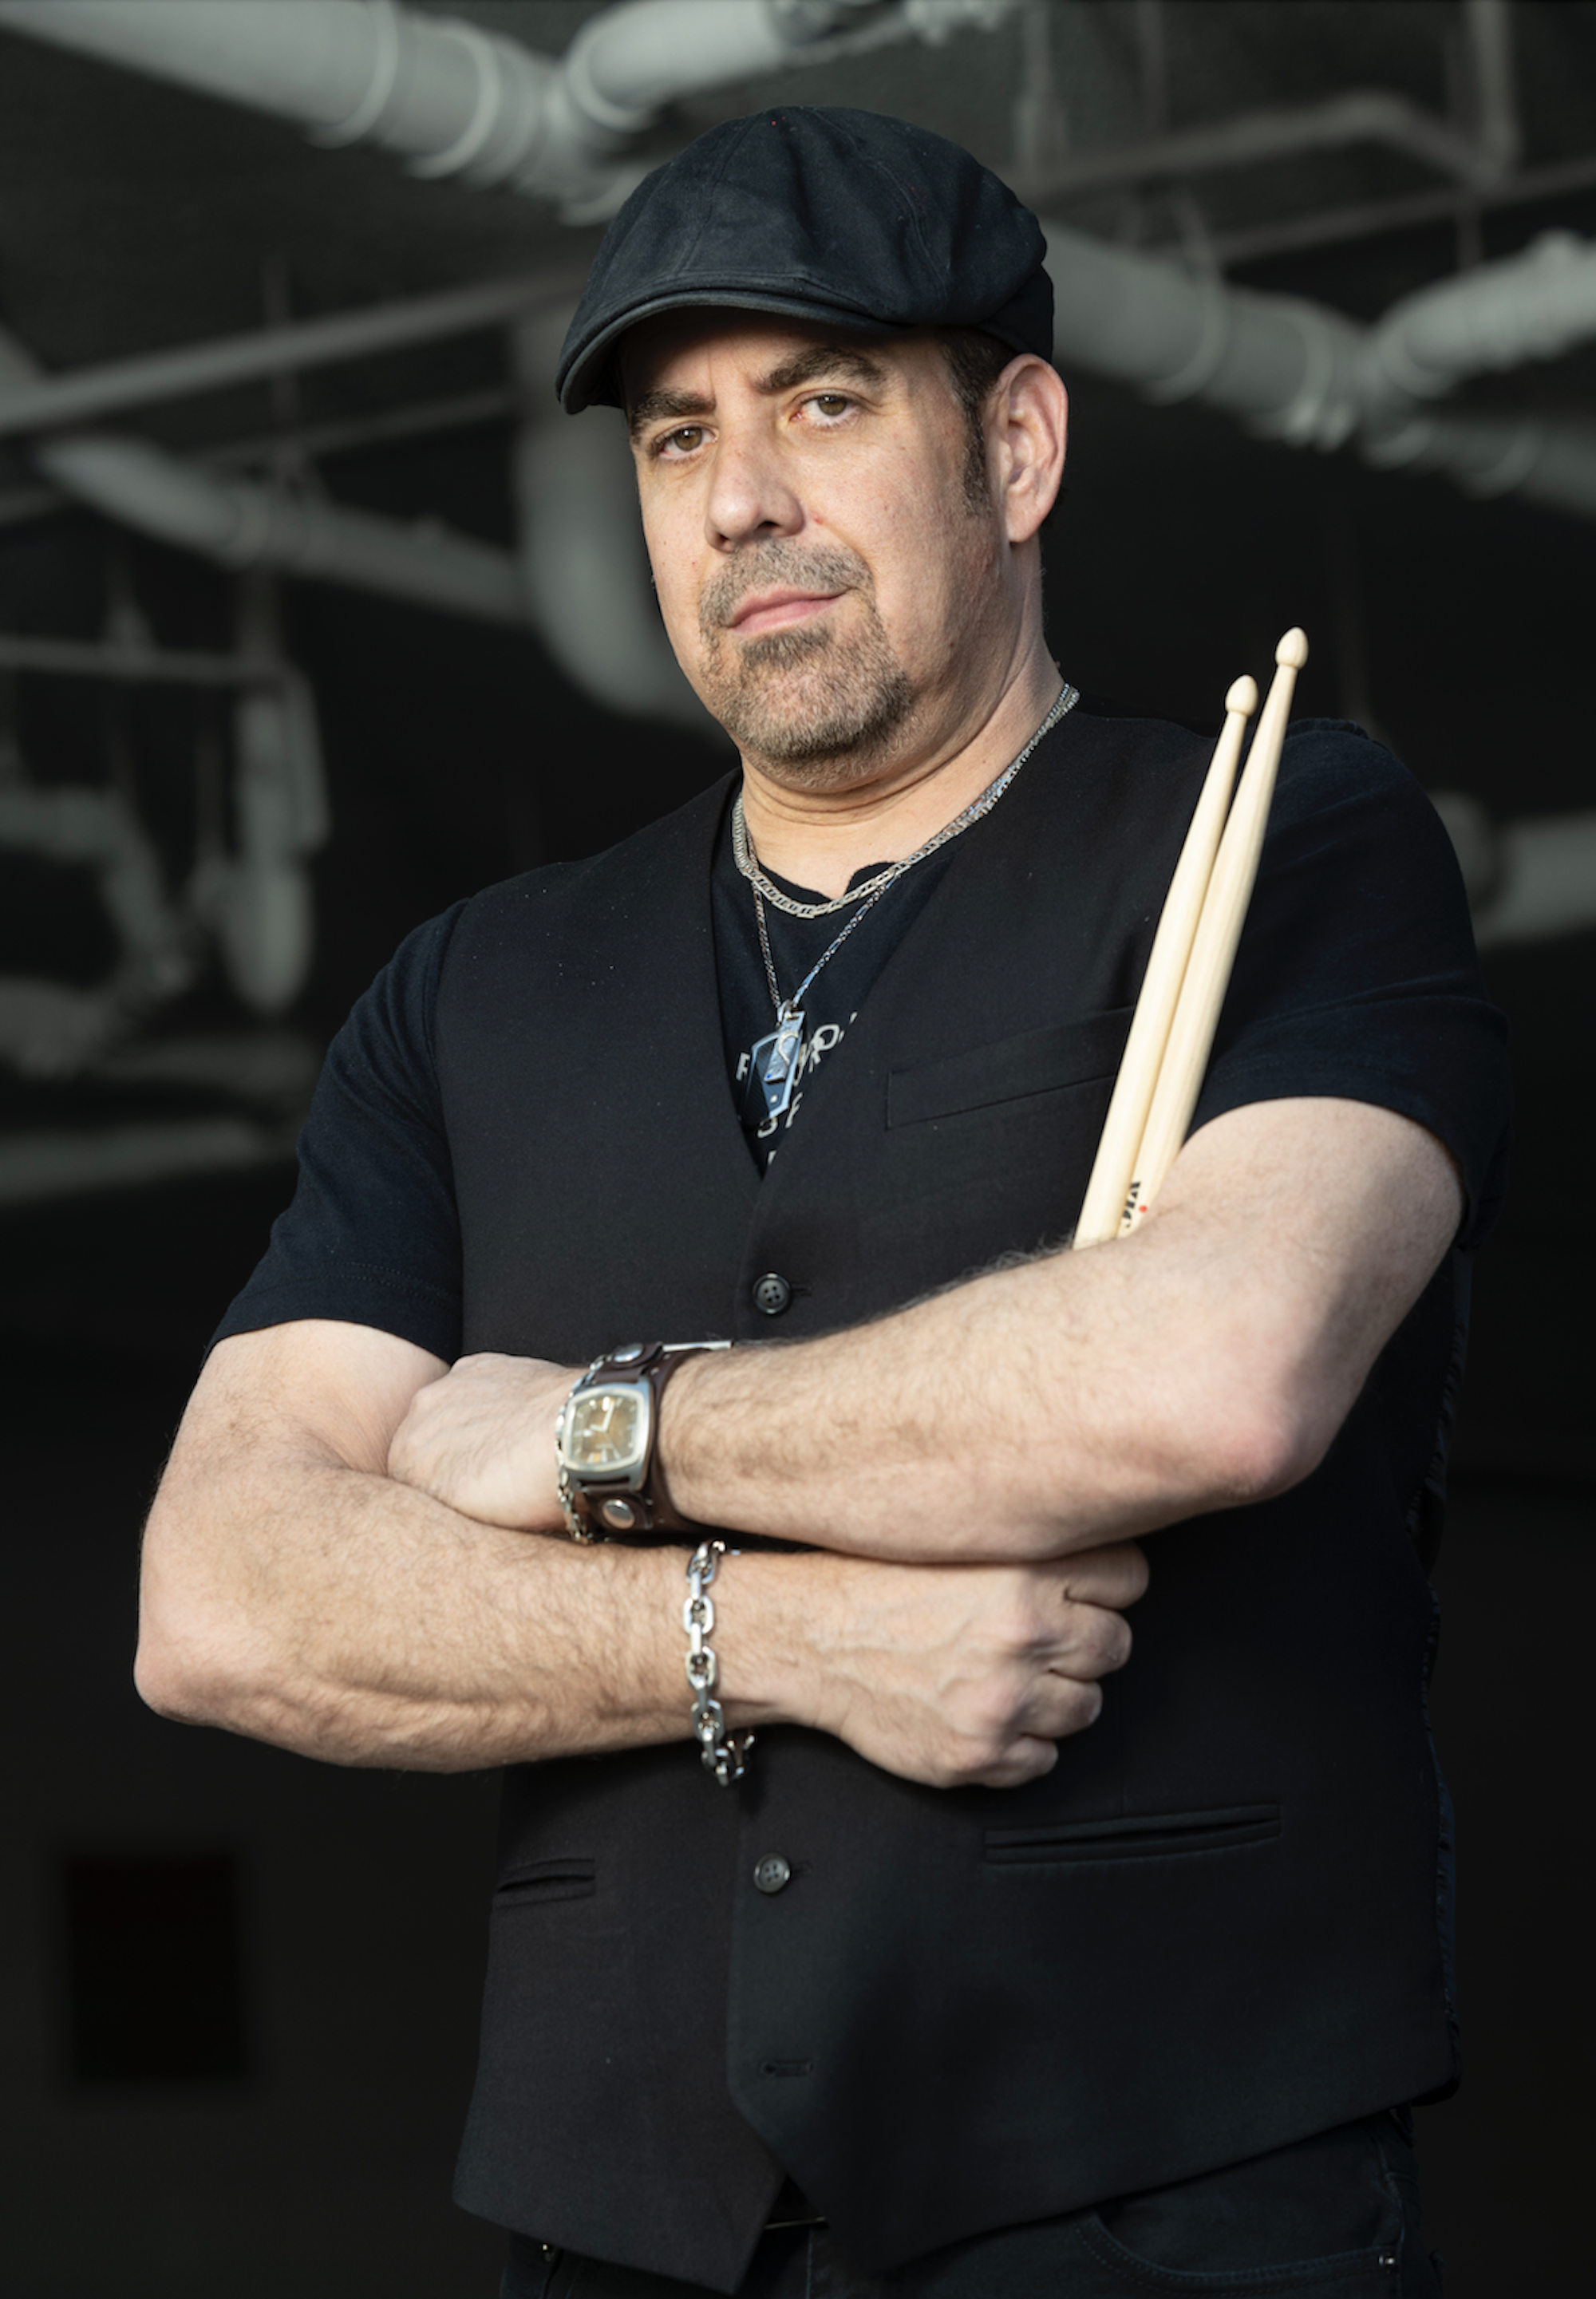 Jack Roth Drummer The Wedge Brothers